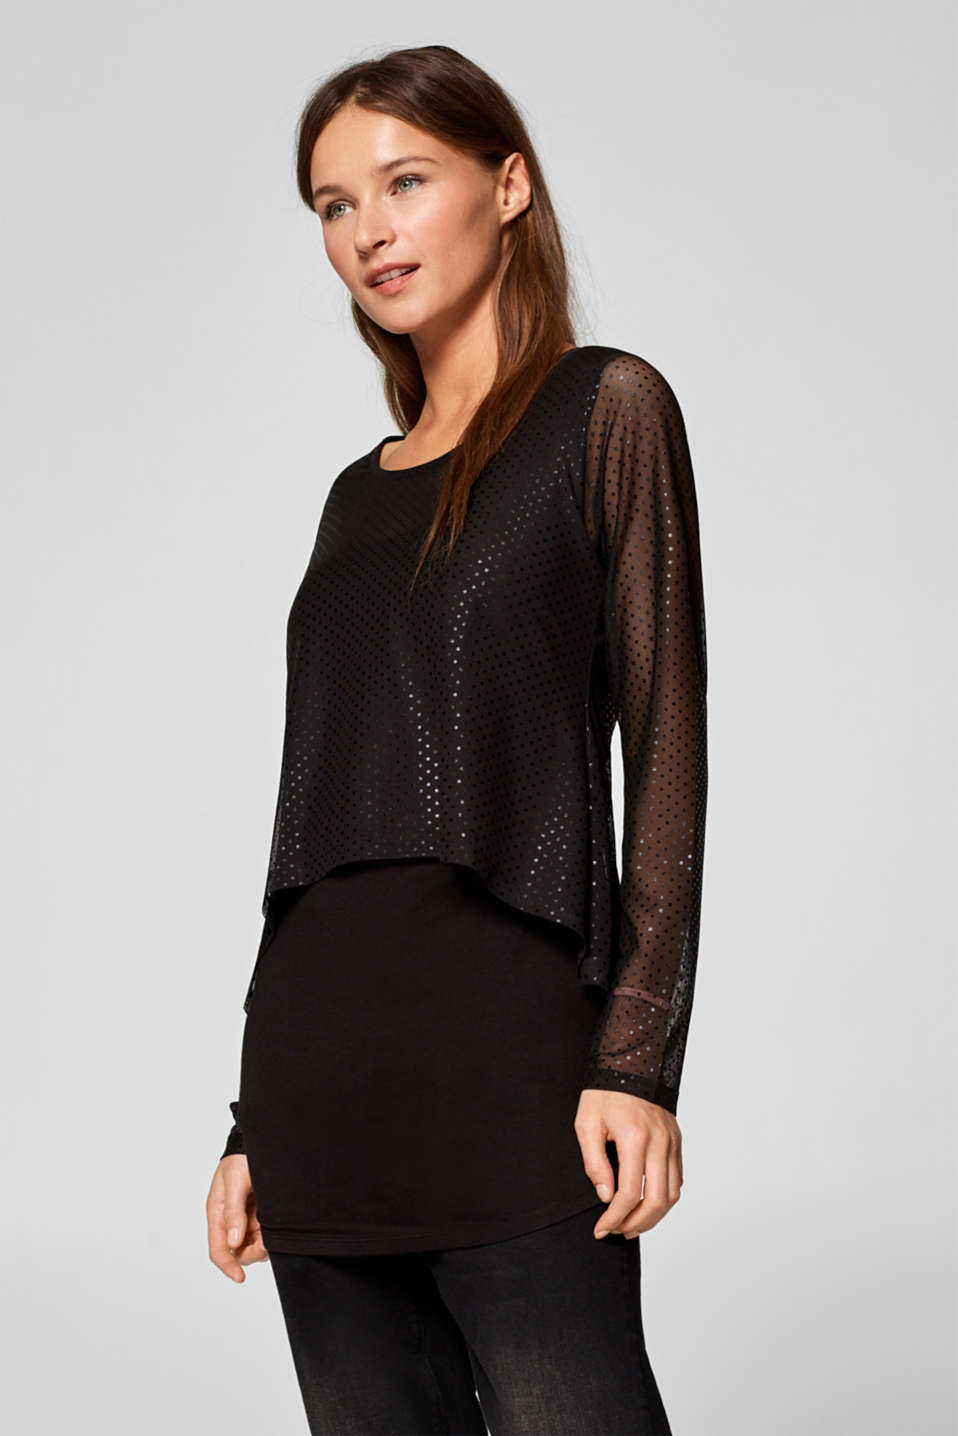 Esprit - Layered T-shirt with a polka dot mesh and nursing function